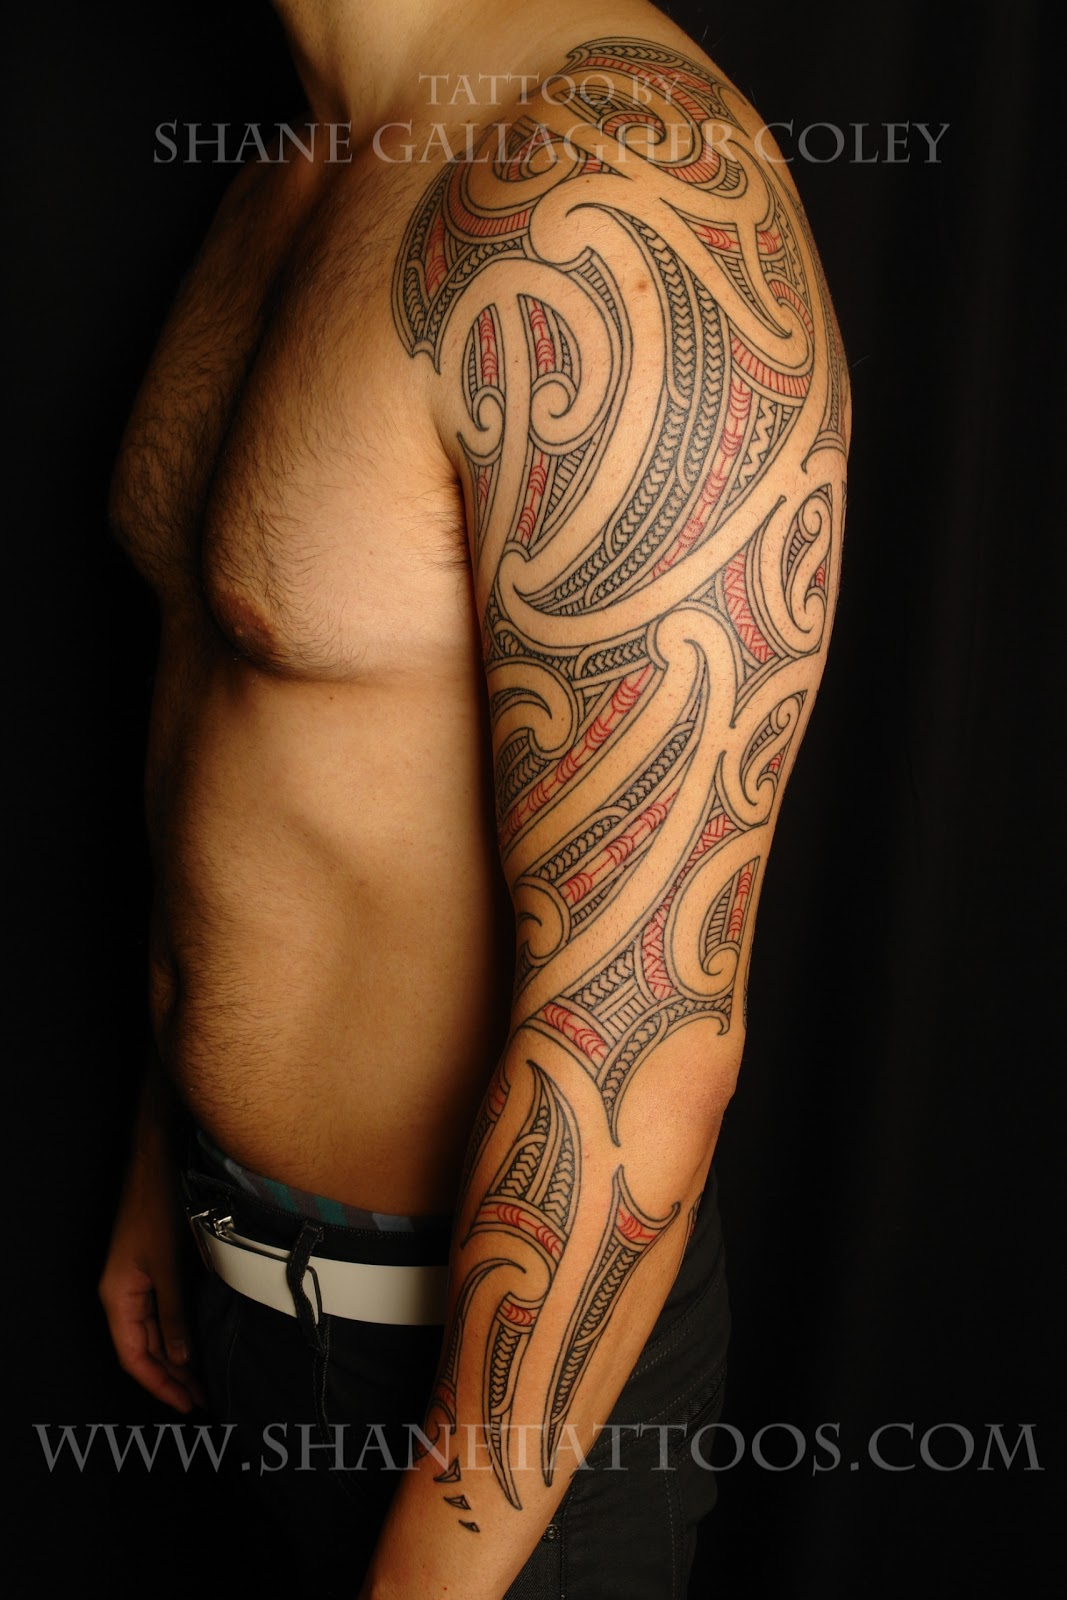 maori polynesian tattoo maori sleeve tattoo on matt. Black Bedroom Furniture Sets. Home Design Ideas